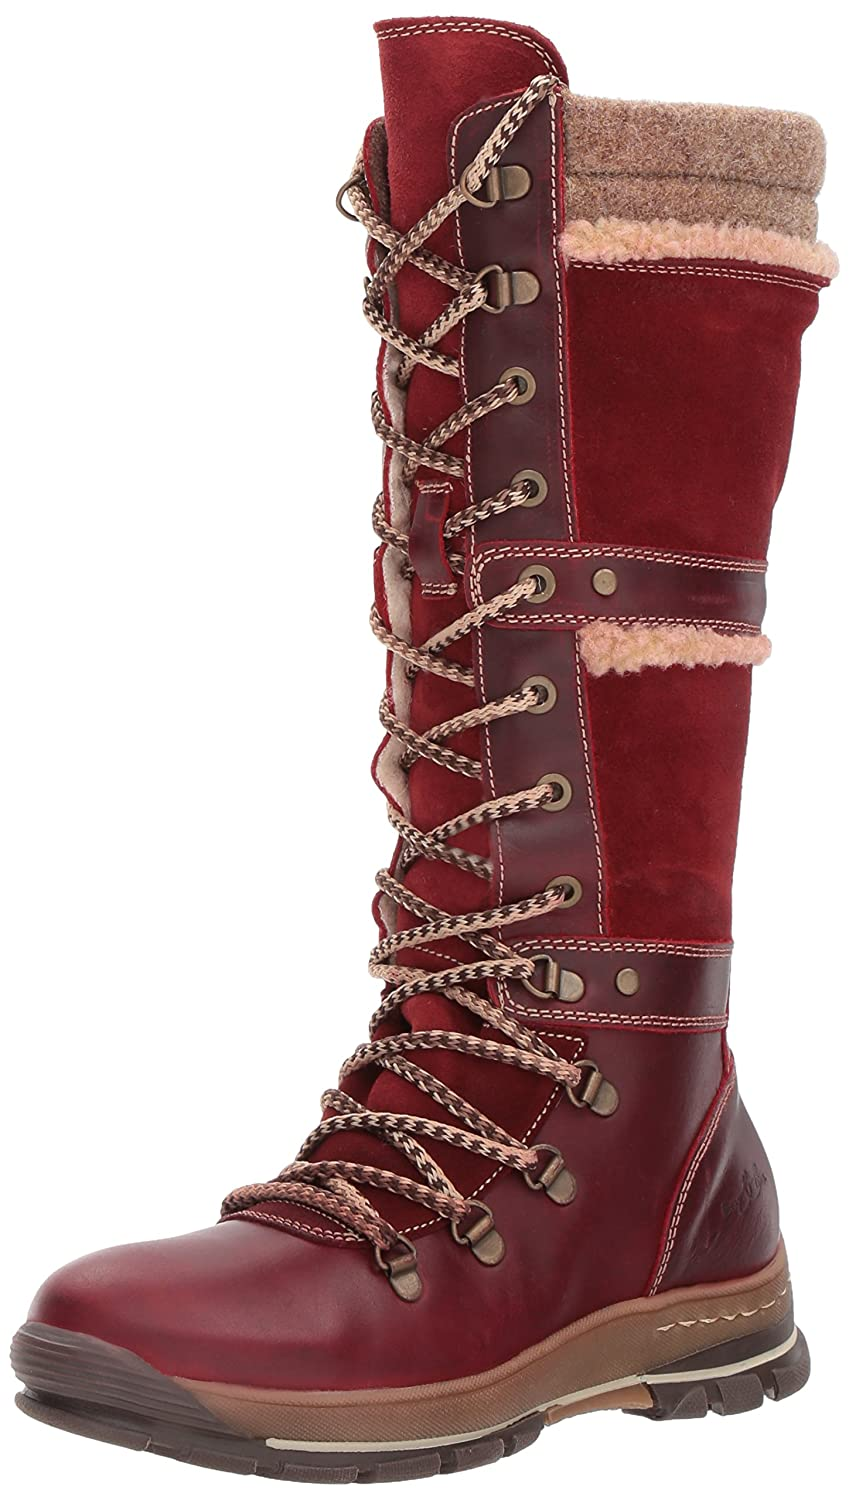 Bos. & Co.. Women's Gabriella Snow Boot B06WWCPF41 40 M EU (9-9.5 US)|Red/Scarlet/Beige Gaucho/Suede